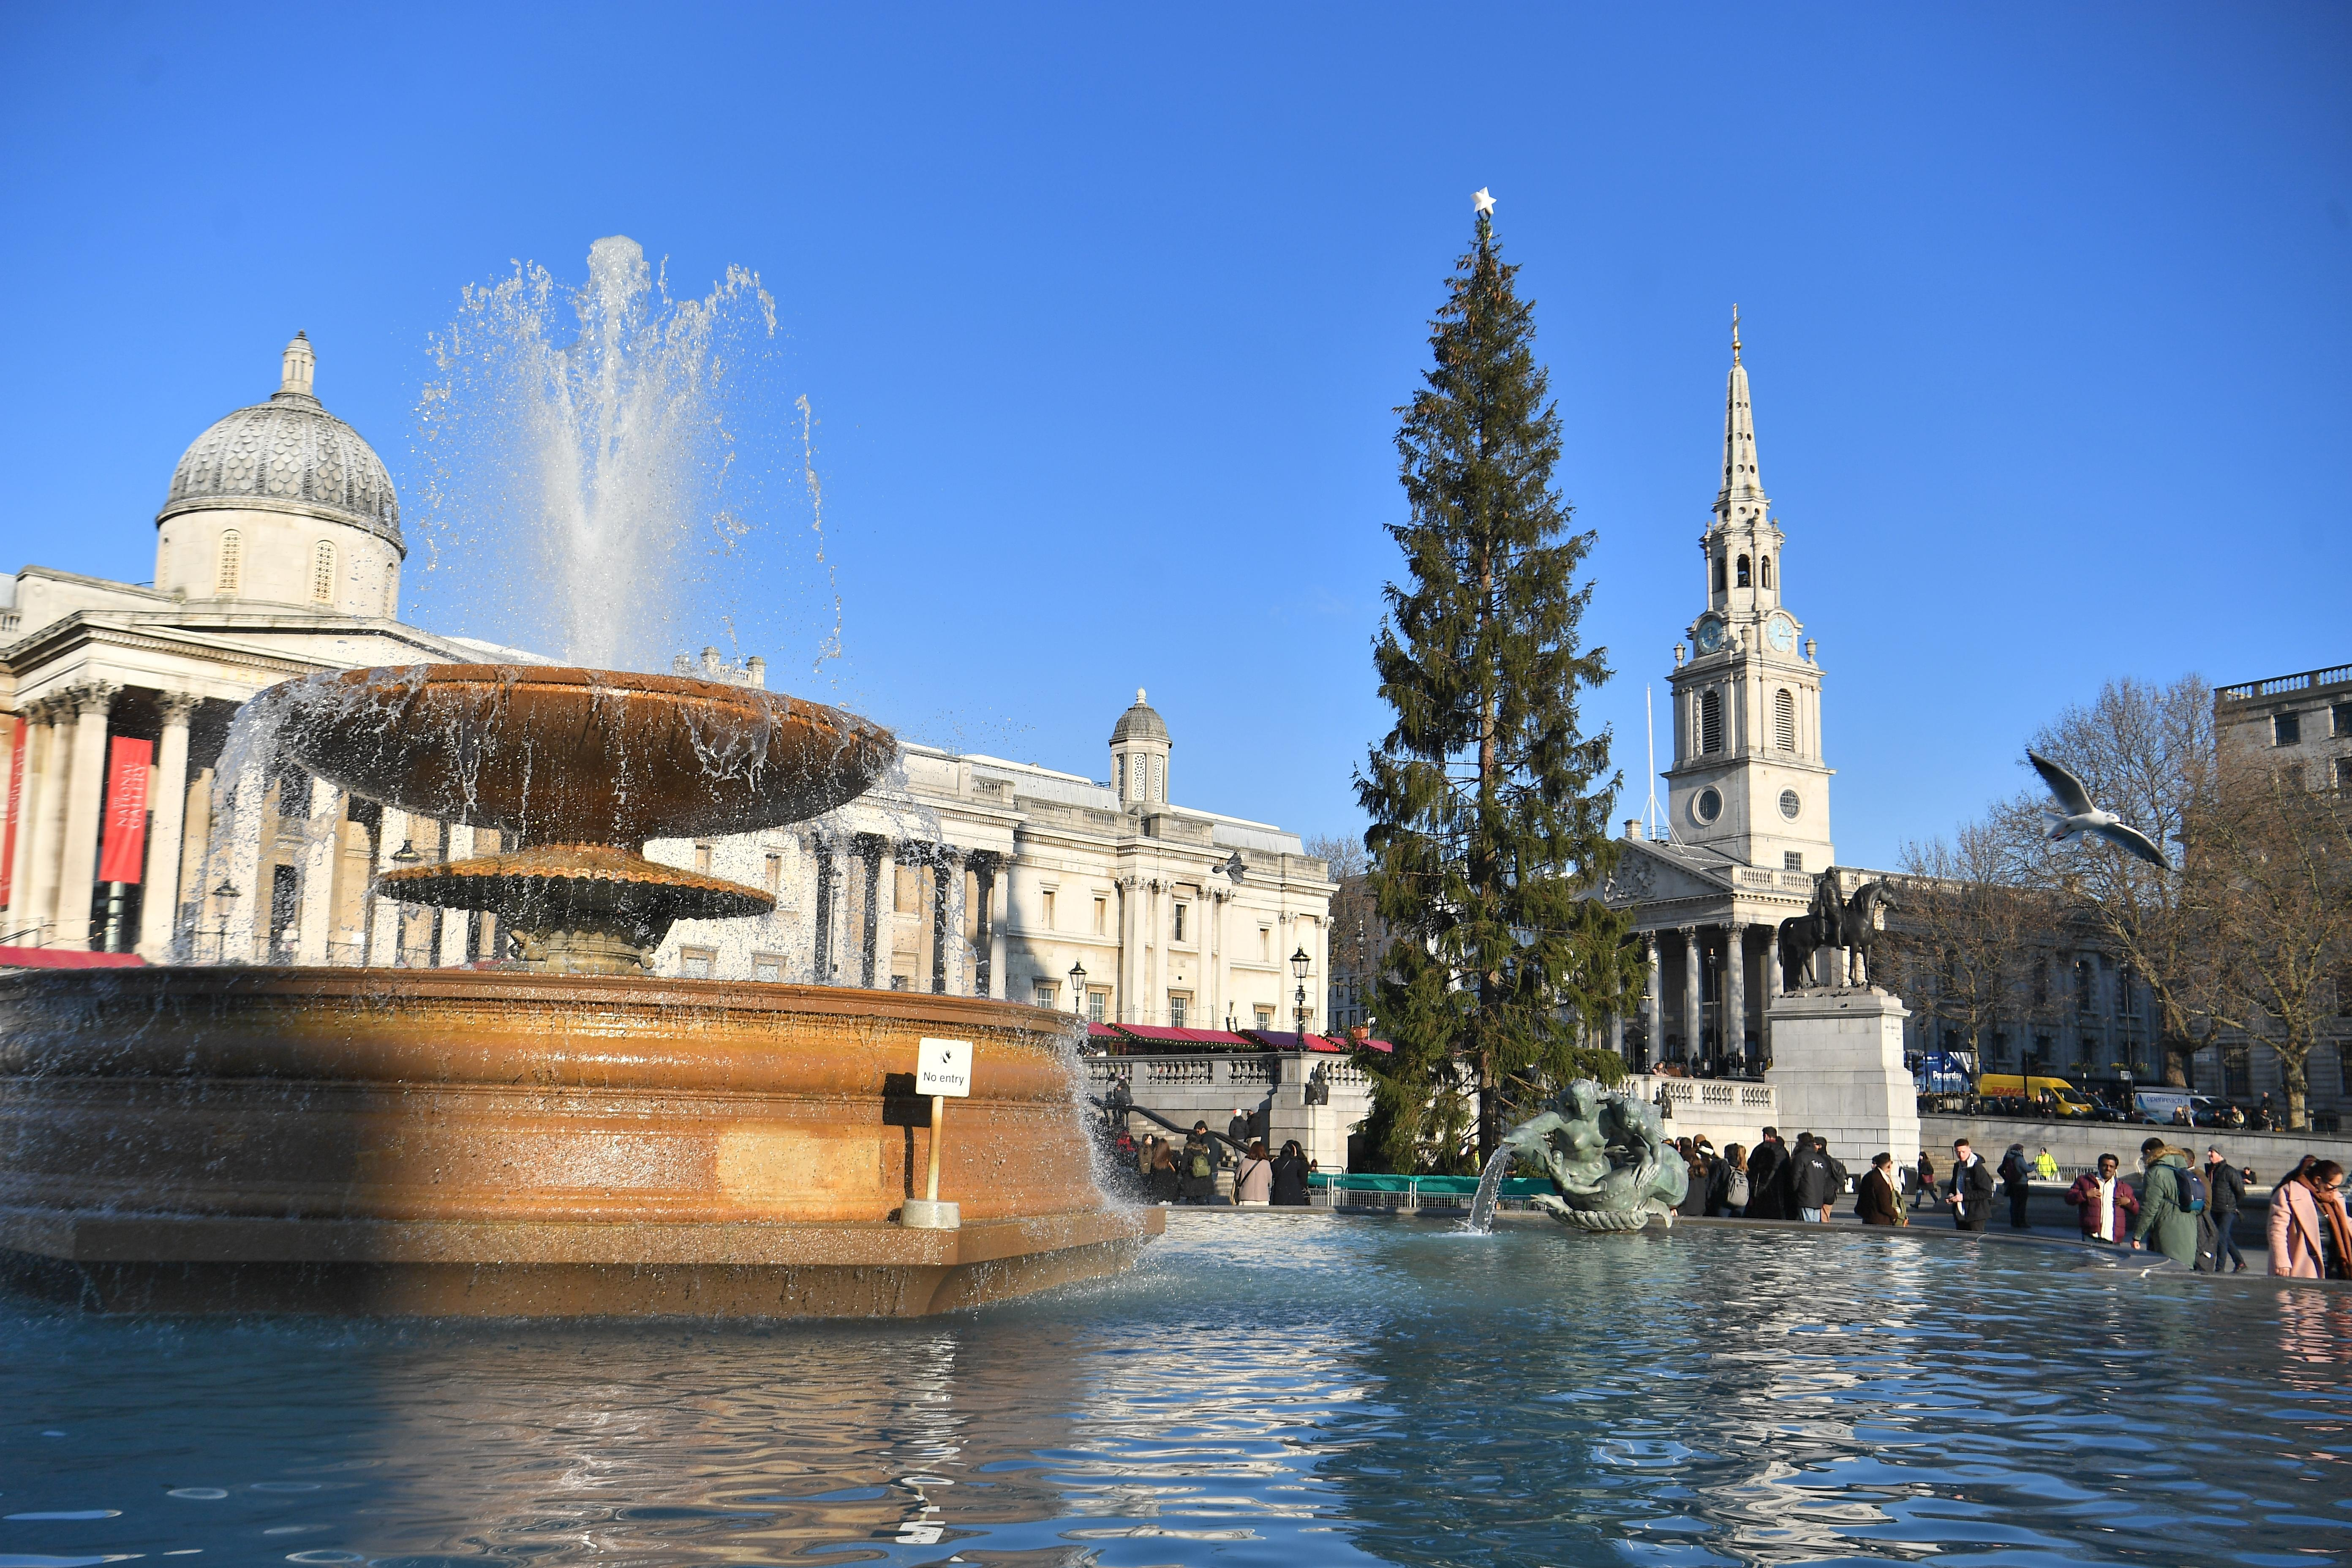 Trafalgar Square Christmas market criticised for being an 'assembly of tat'